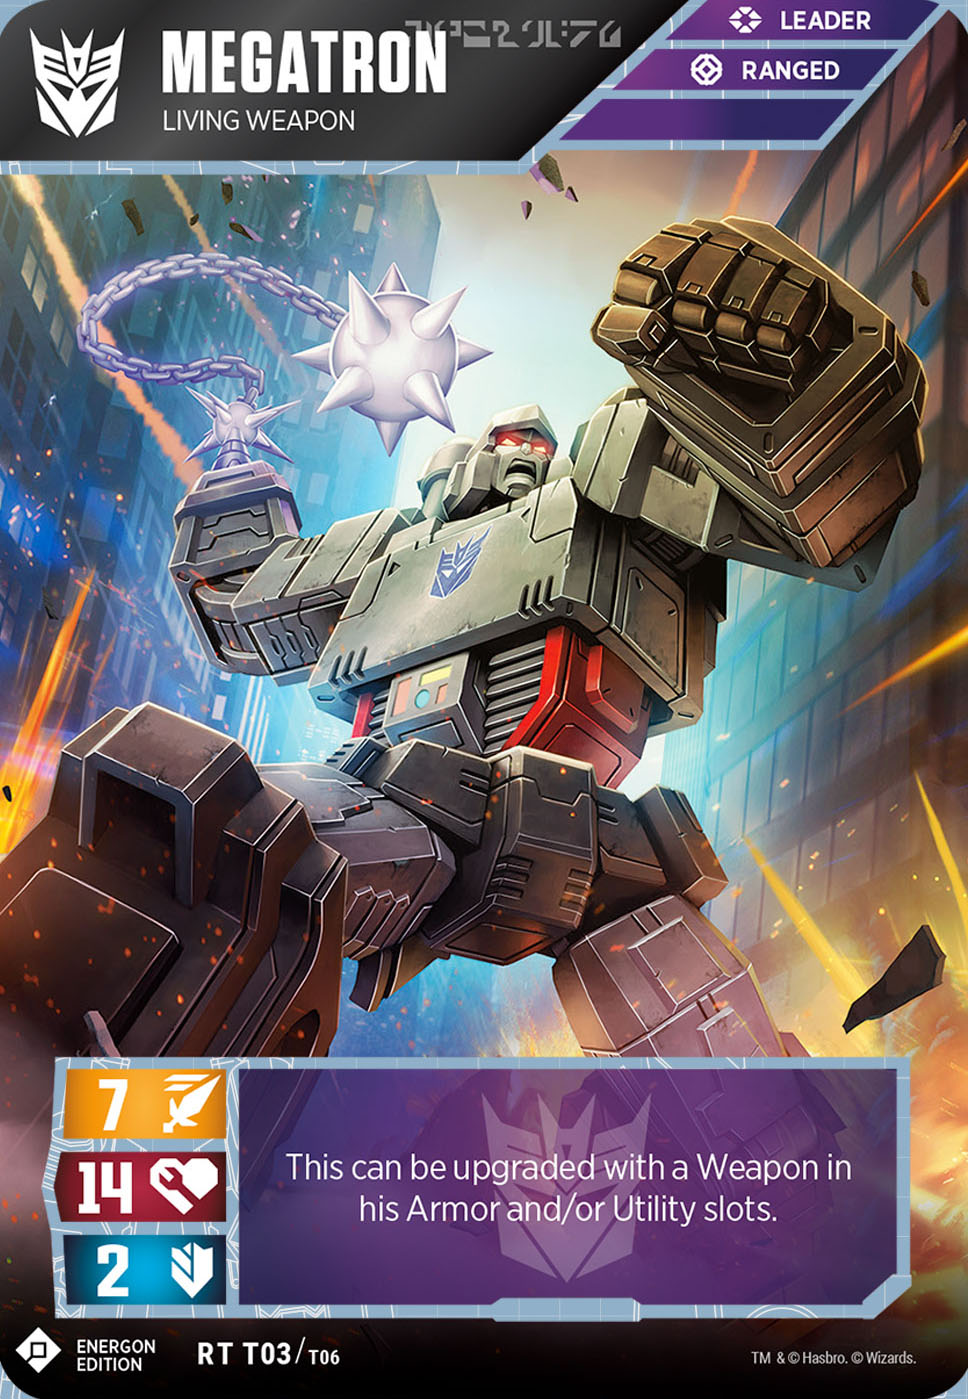 https://images.fortressmaximus.io/cards/ee1/character/megatron-living-weapon-EE1-bot.jpg